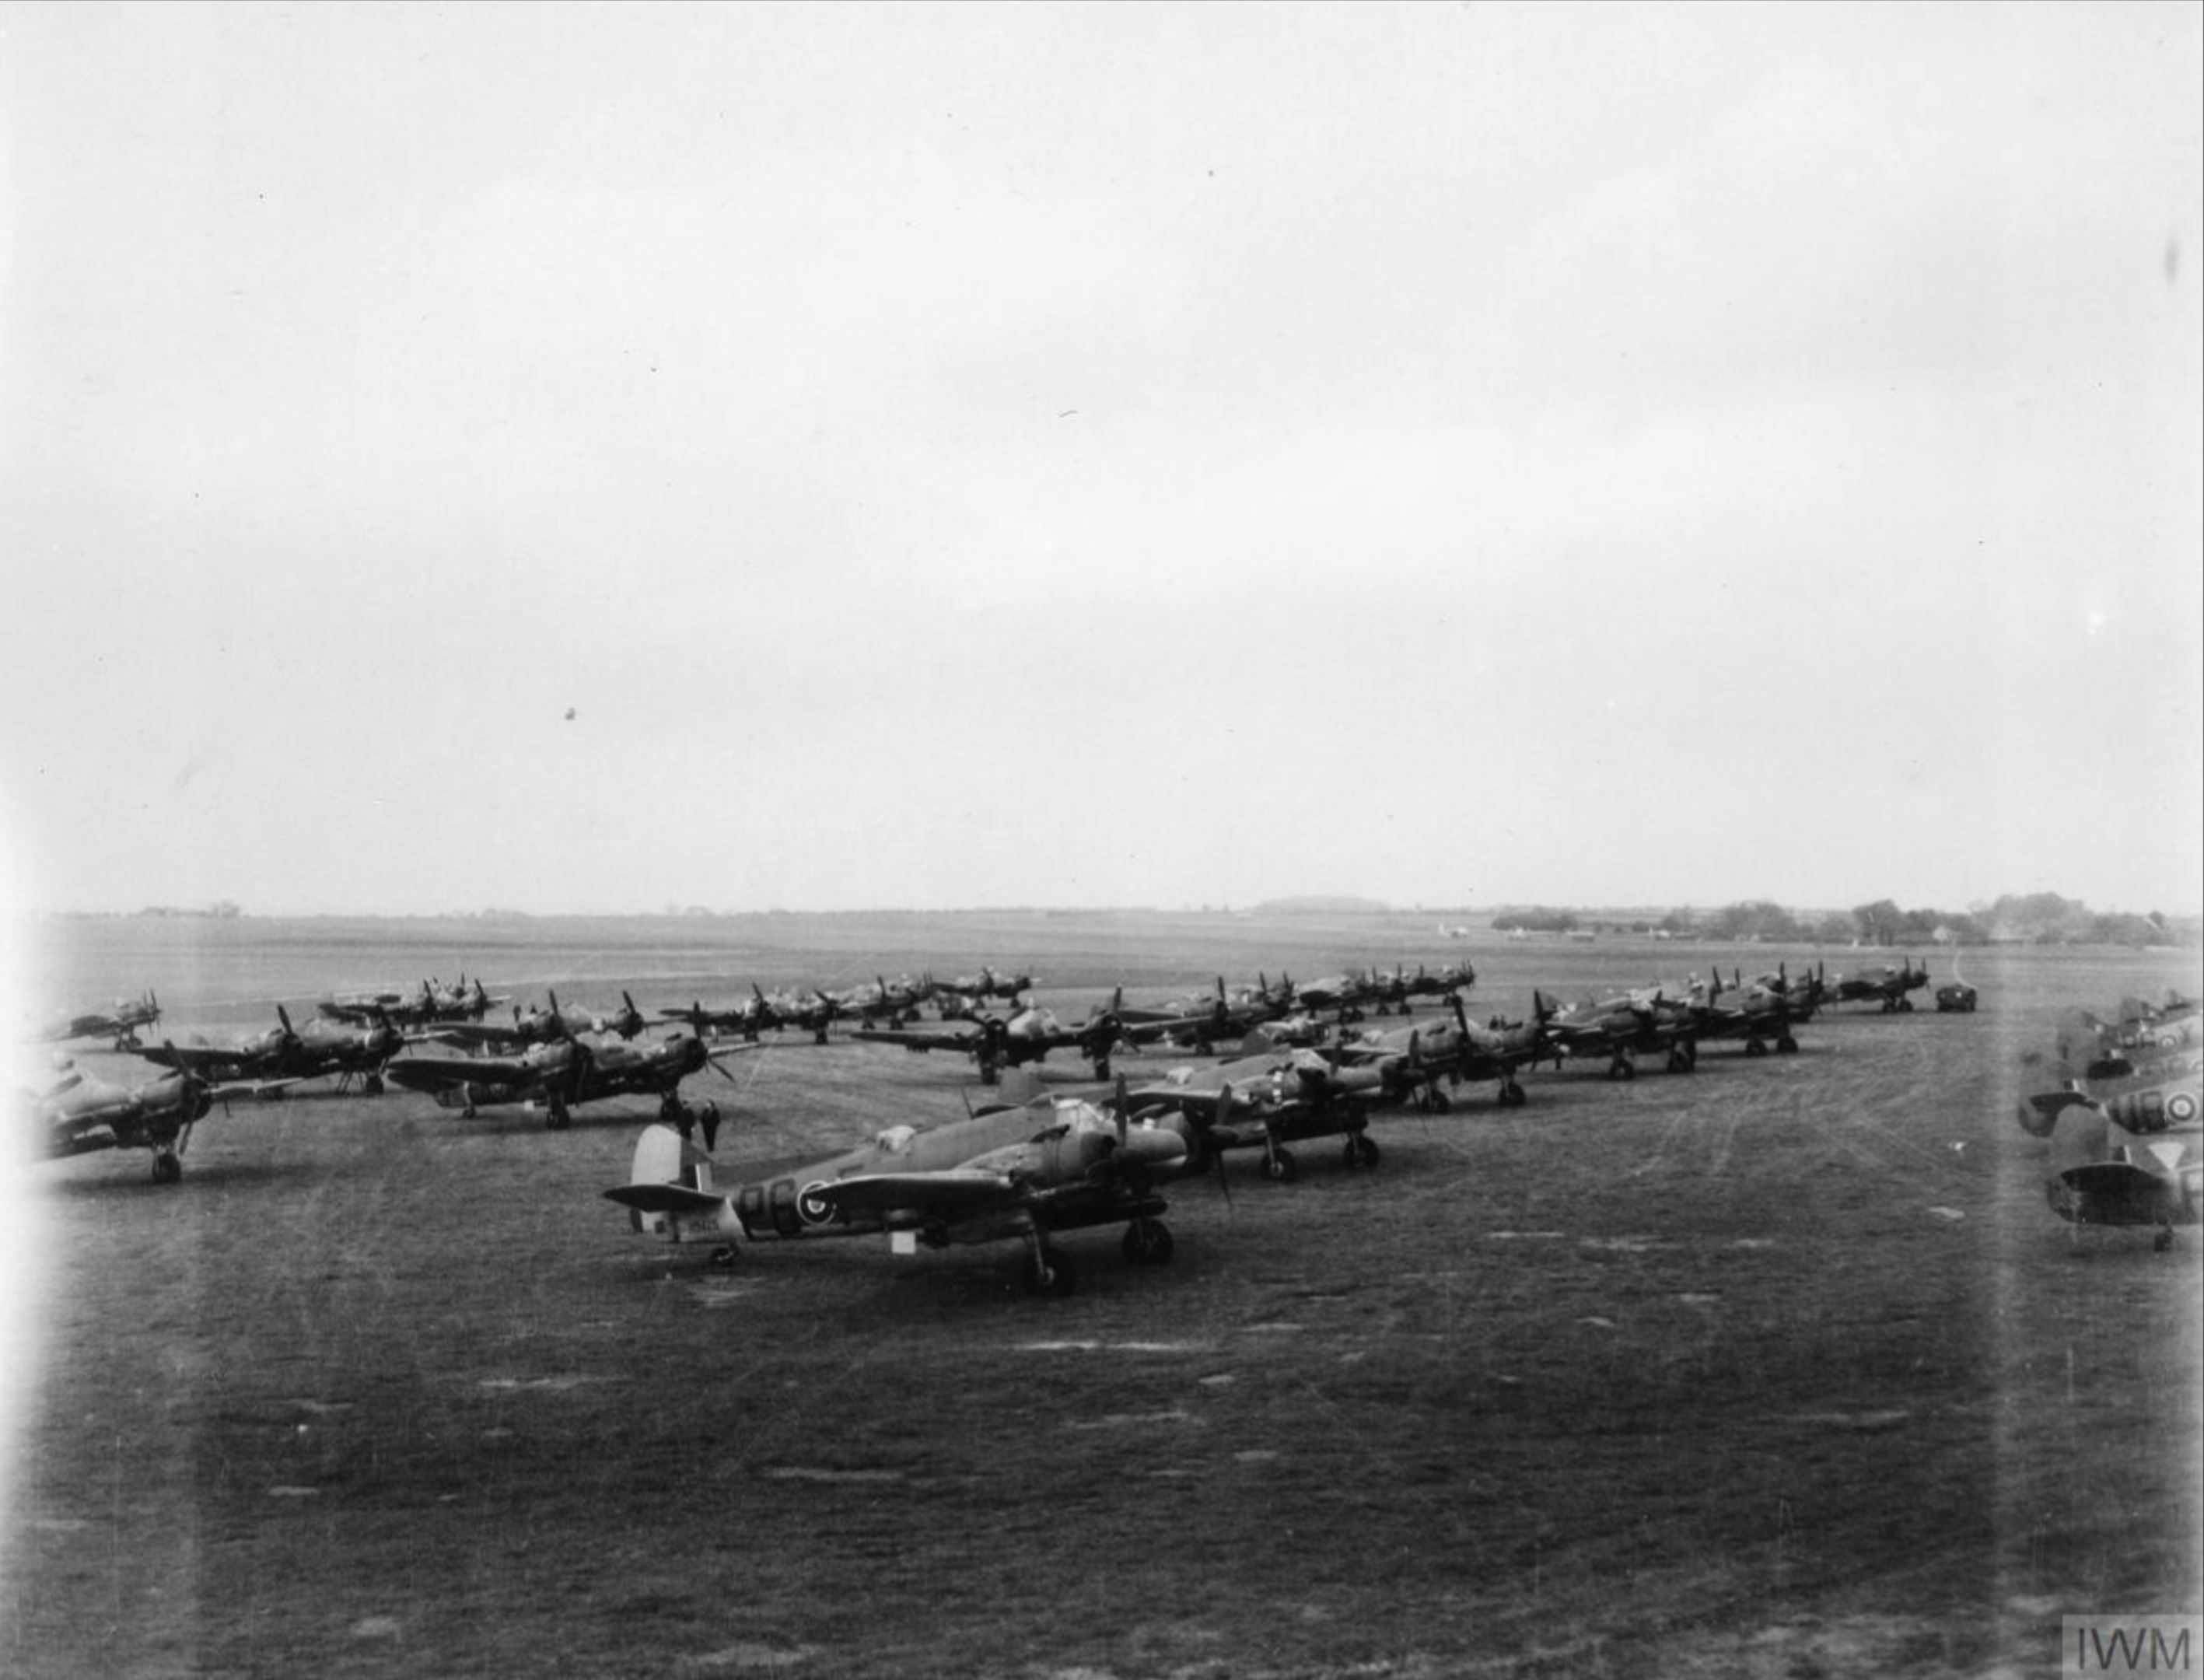 Beaufighter TFX RNZAF 489Sqn part of RAF Dallachy Strike Wing lined up at Dallachy Morayshire IWM HU93036